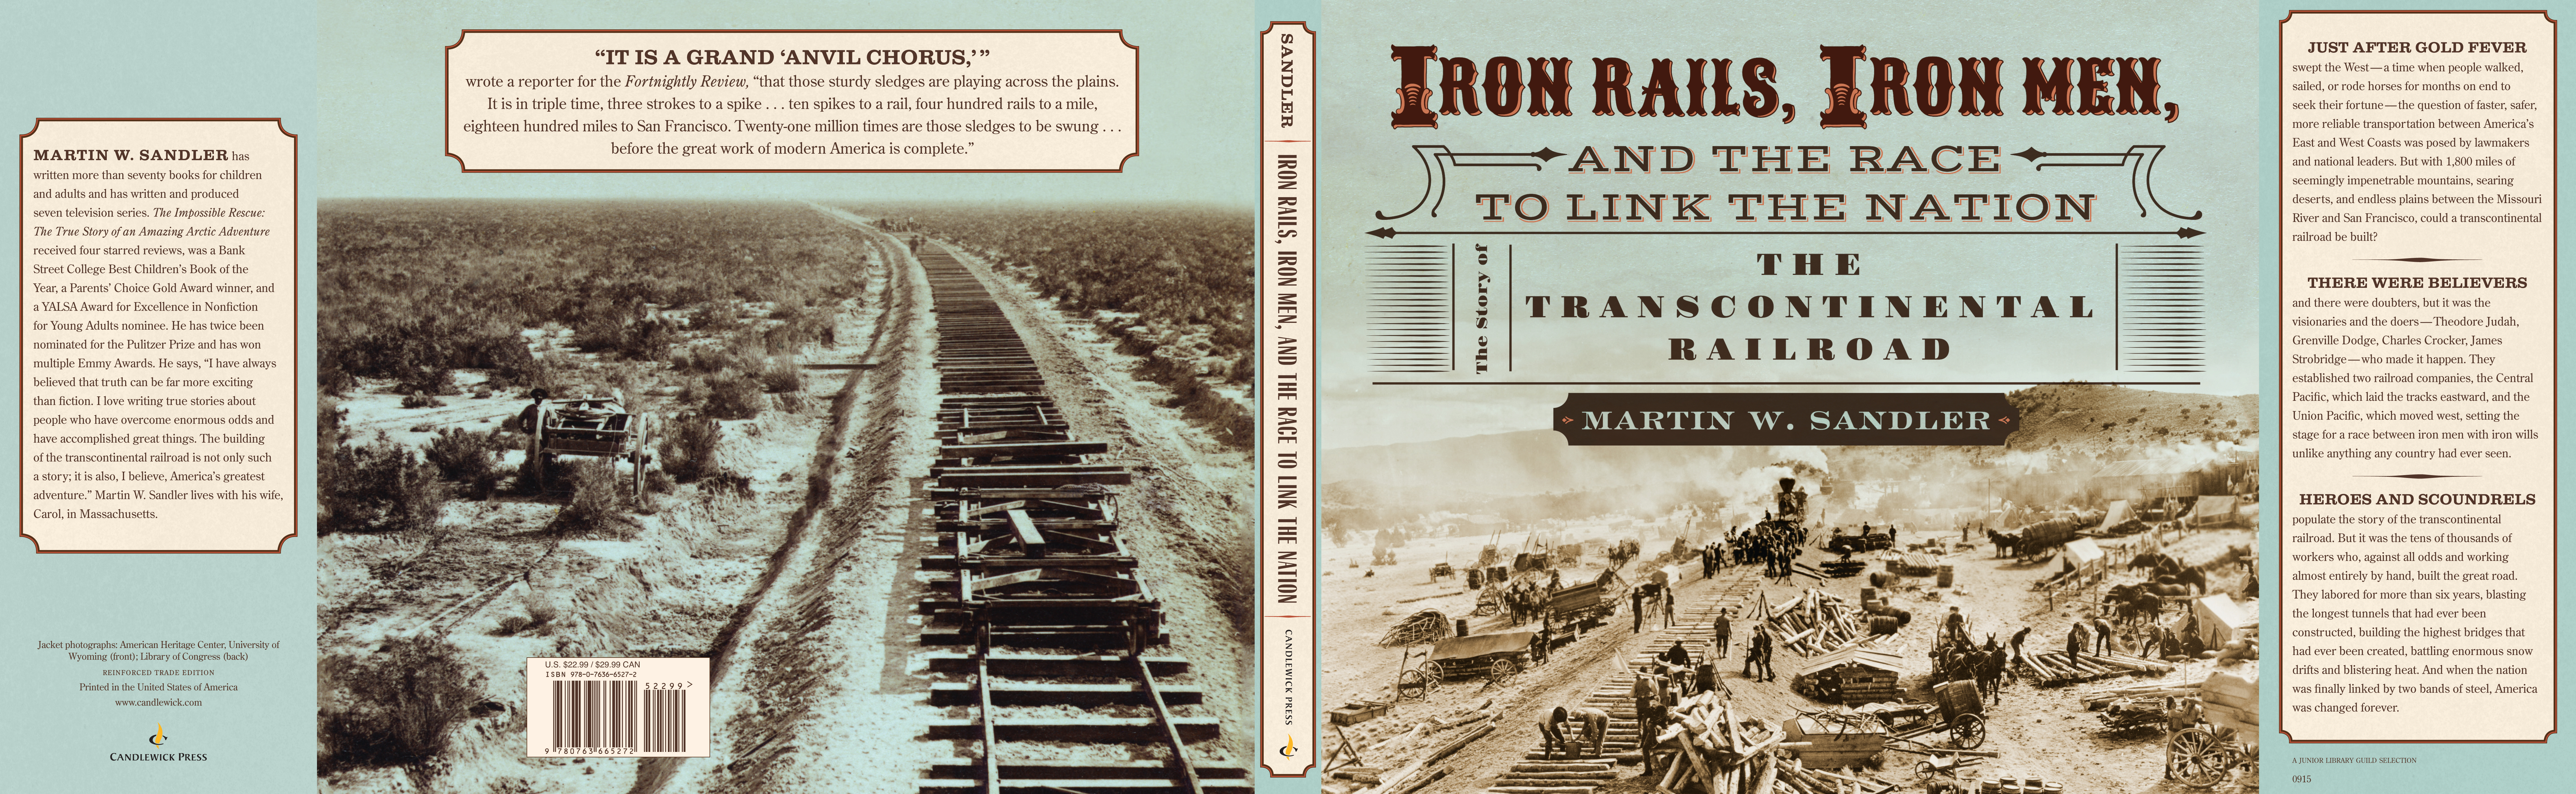 Full jacket for IRON RAILS, IRON MEN, AND THE RACE TO LINK THE NATION